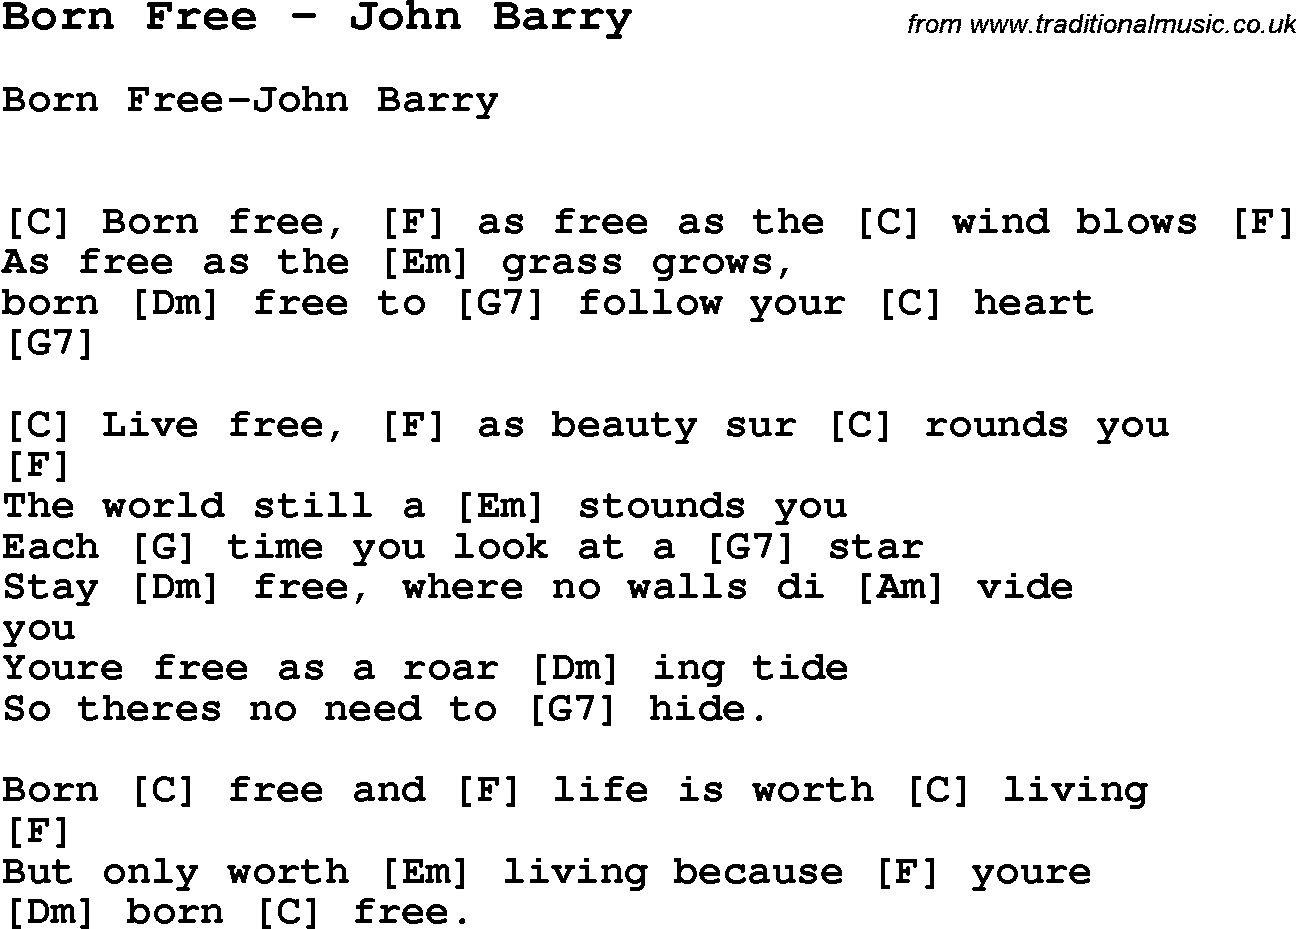 Song born free by john barry song lyric for vocal performance song born free by john barry with lyrics for vocal performance and accompaniment chords for hexwebz Image collections